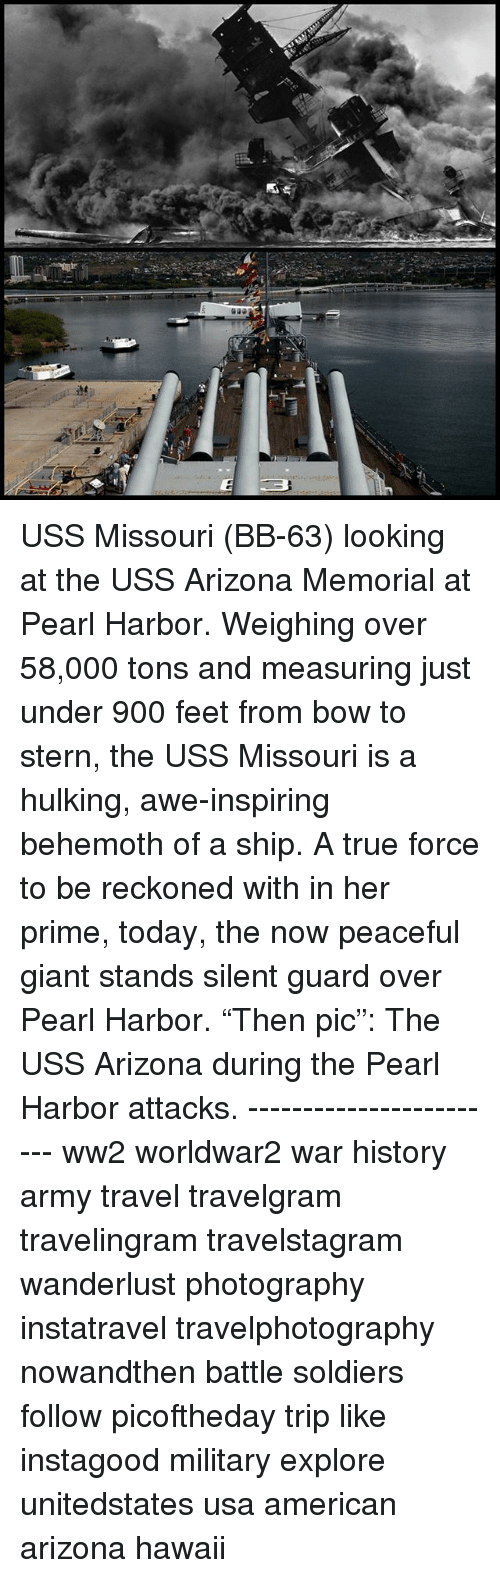 "Memes, Soldiers, and True: USS Missouri (BB-63) looking at the USS Arizona Memorial at Pearl Harbor. Weighing over 58,000 tons and measuring just under 900 feet from bow to stern, the USS Missouri is a hulking, awe-inspiring behemoth of a ship. A true force to be reckoned with in her prime, today, the now peaceful giant stands silent guard over Pearl Harbor. ""Then pic"": The USS Arizona during the Pearl Harbor attacks. ------------------------ ww2 worldwar2 war history army travel travelgram travelingram travelstagram wanderlust photography instatravel travelphotography nowandthen battle soldiers follow picoftheday trip like instagood military explore unitedstates usa american arizona hawaii"